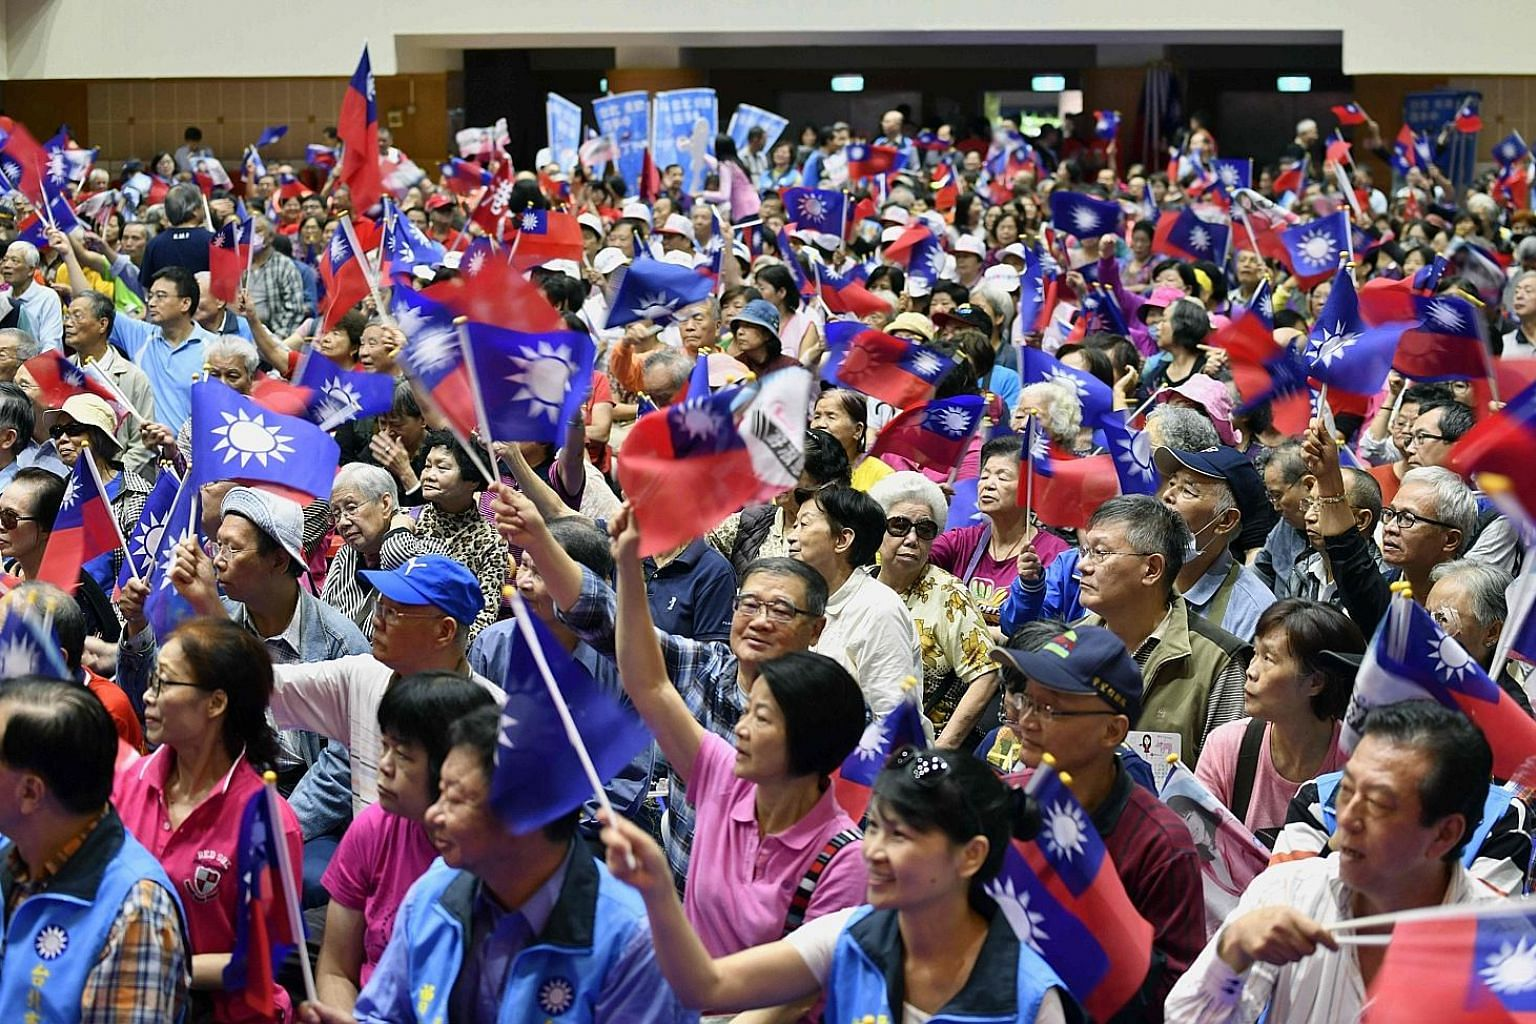 Supporters at a rally for Taiwan's main opposition party Kuomintang in Taipei on Nov 10. The results of Saturday's municipal polls will be seen as a midterm test of confidence in President Tsai Ing-wen's rule, and a loss for her Democratic Progressiv